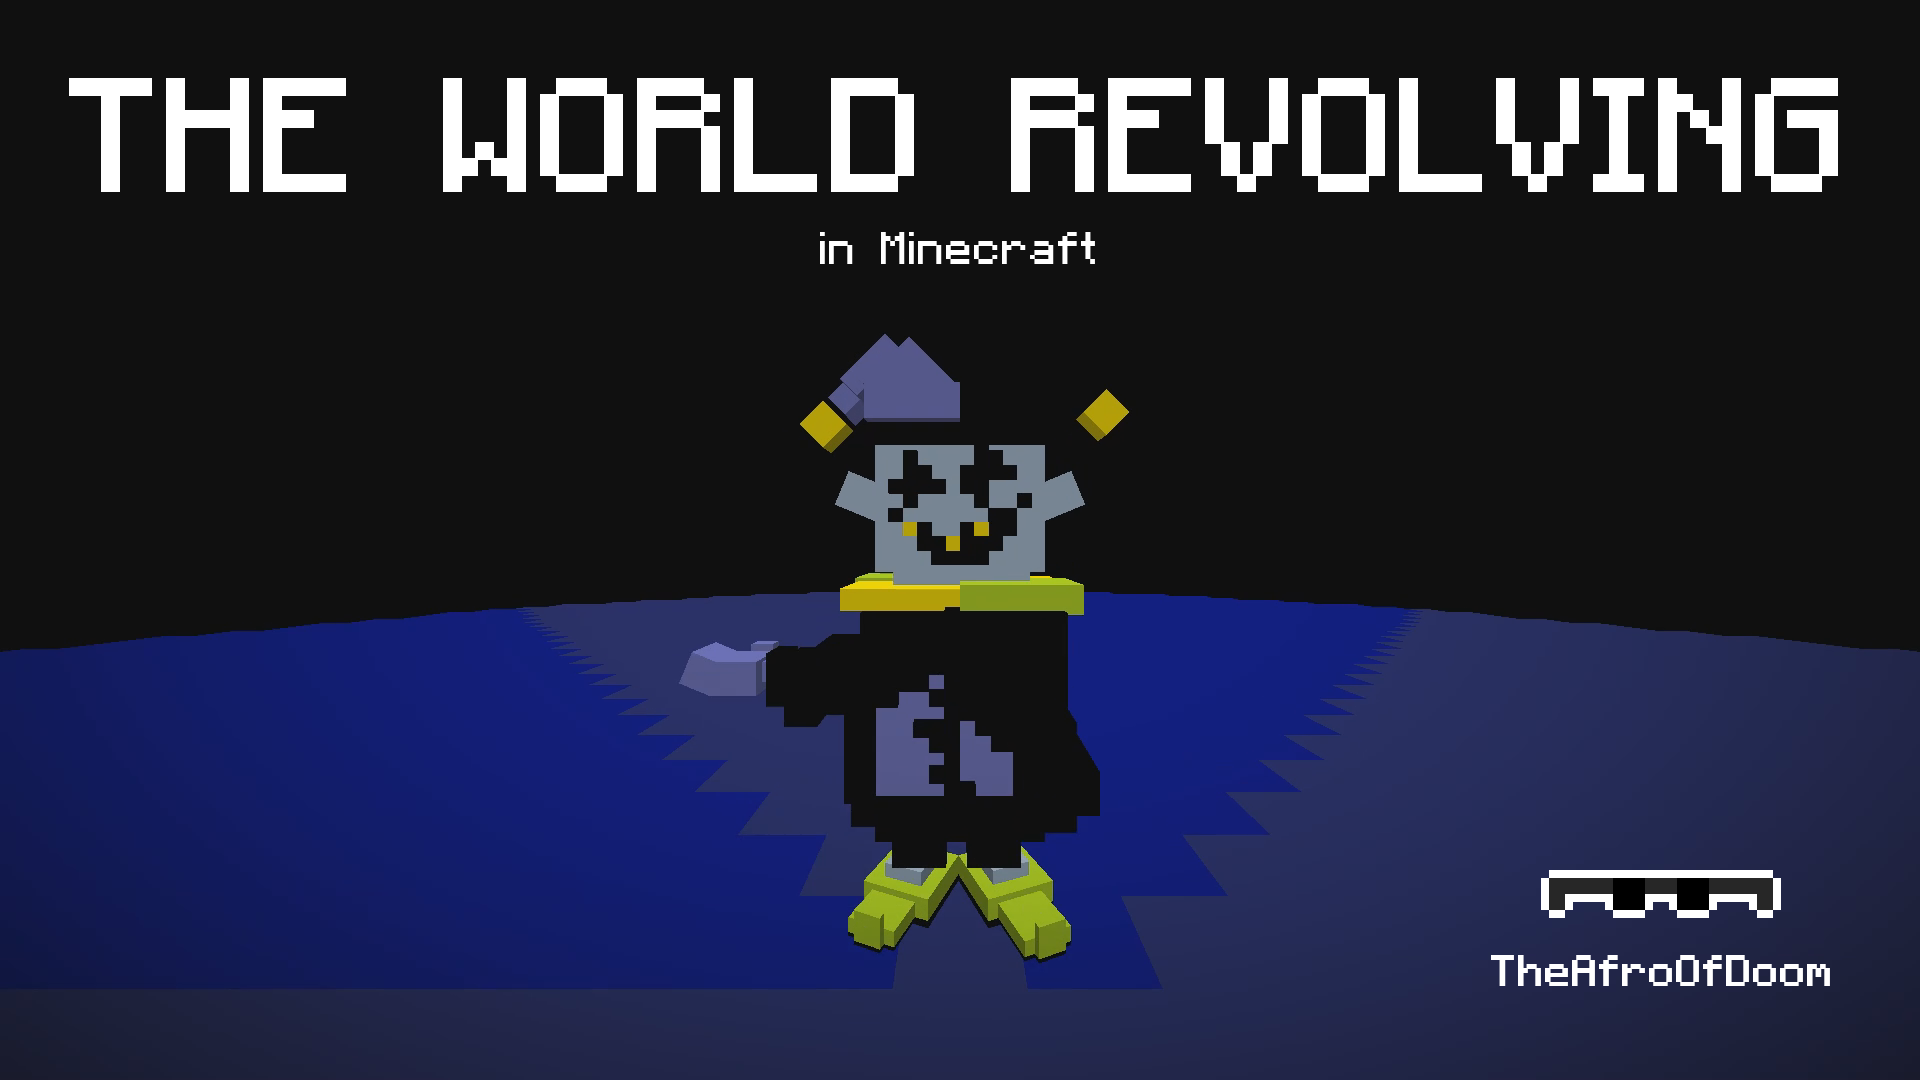 Download THE WORLD REVOLVING for Minecraft 1.14.2